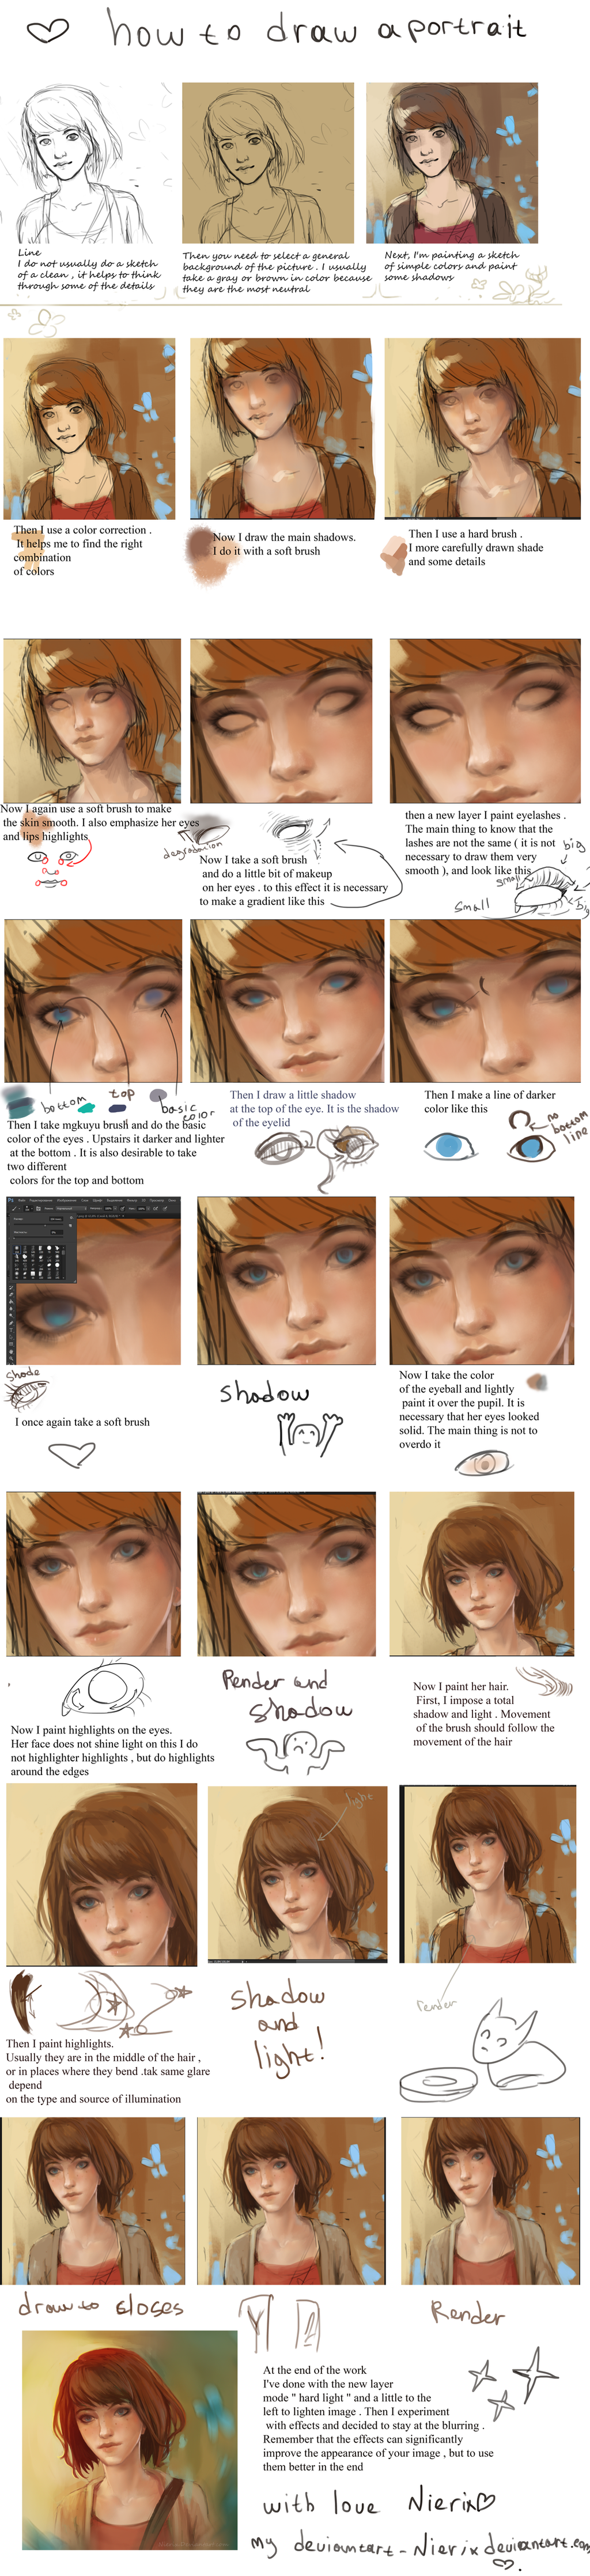 Digital painting on photoshop tutorials deviantart for Portrait painting tutorial